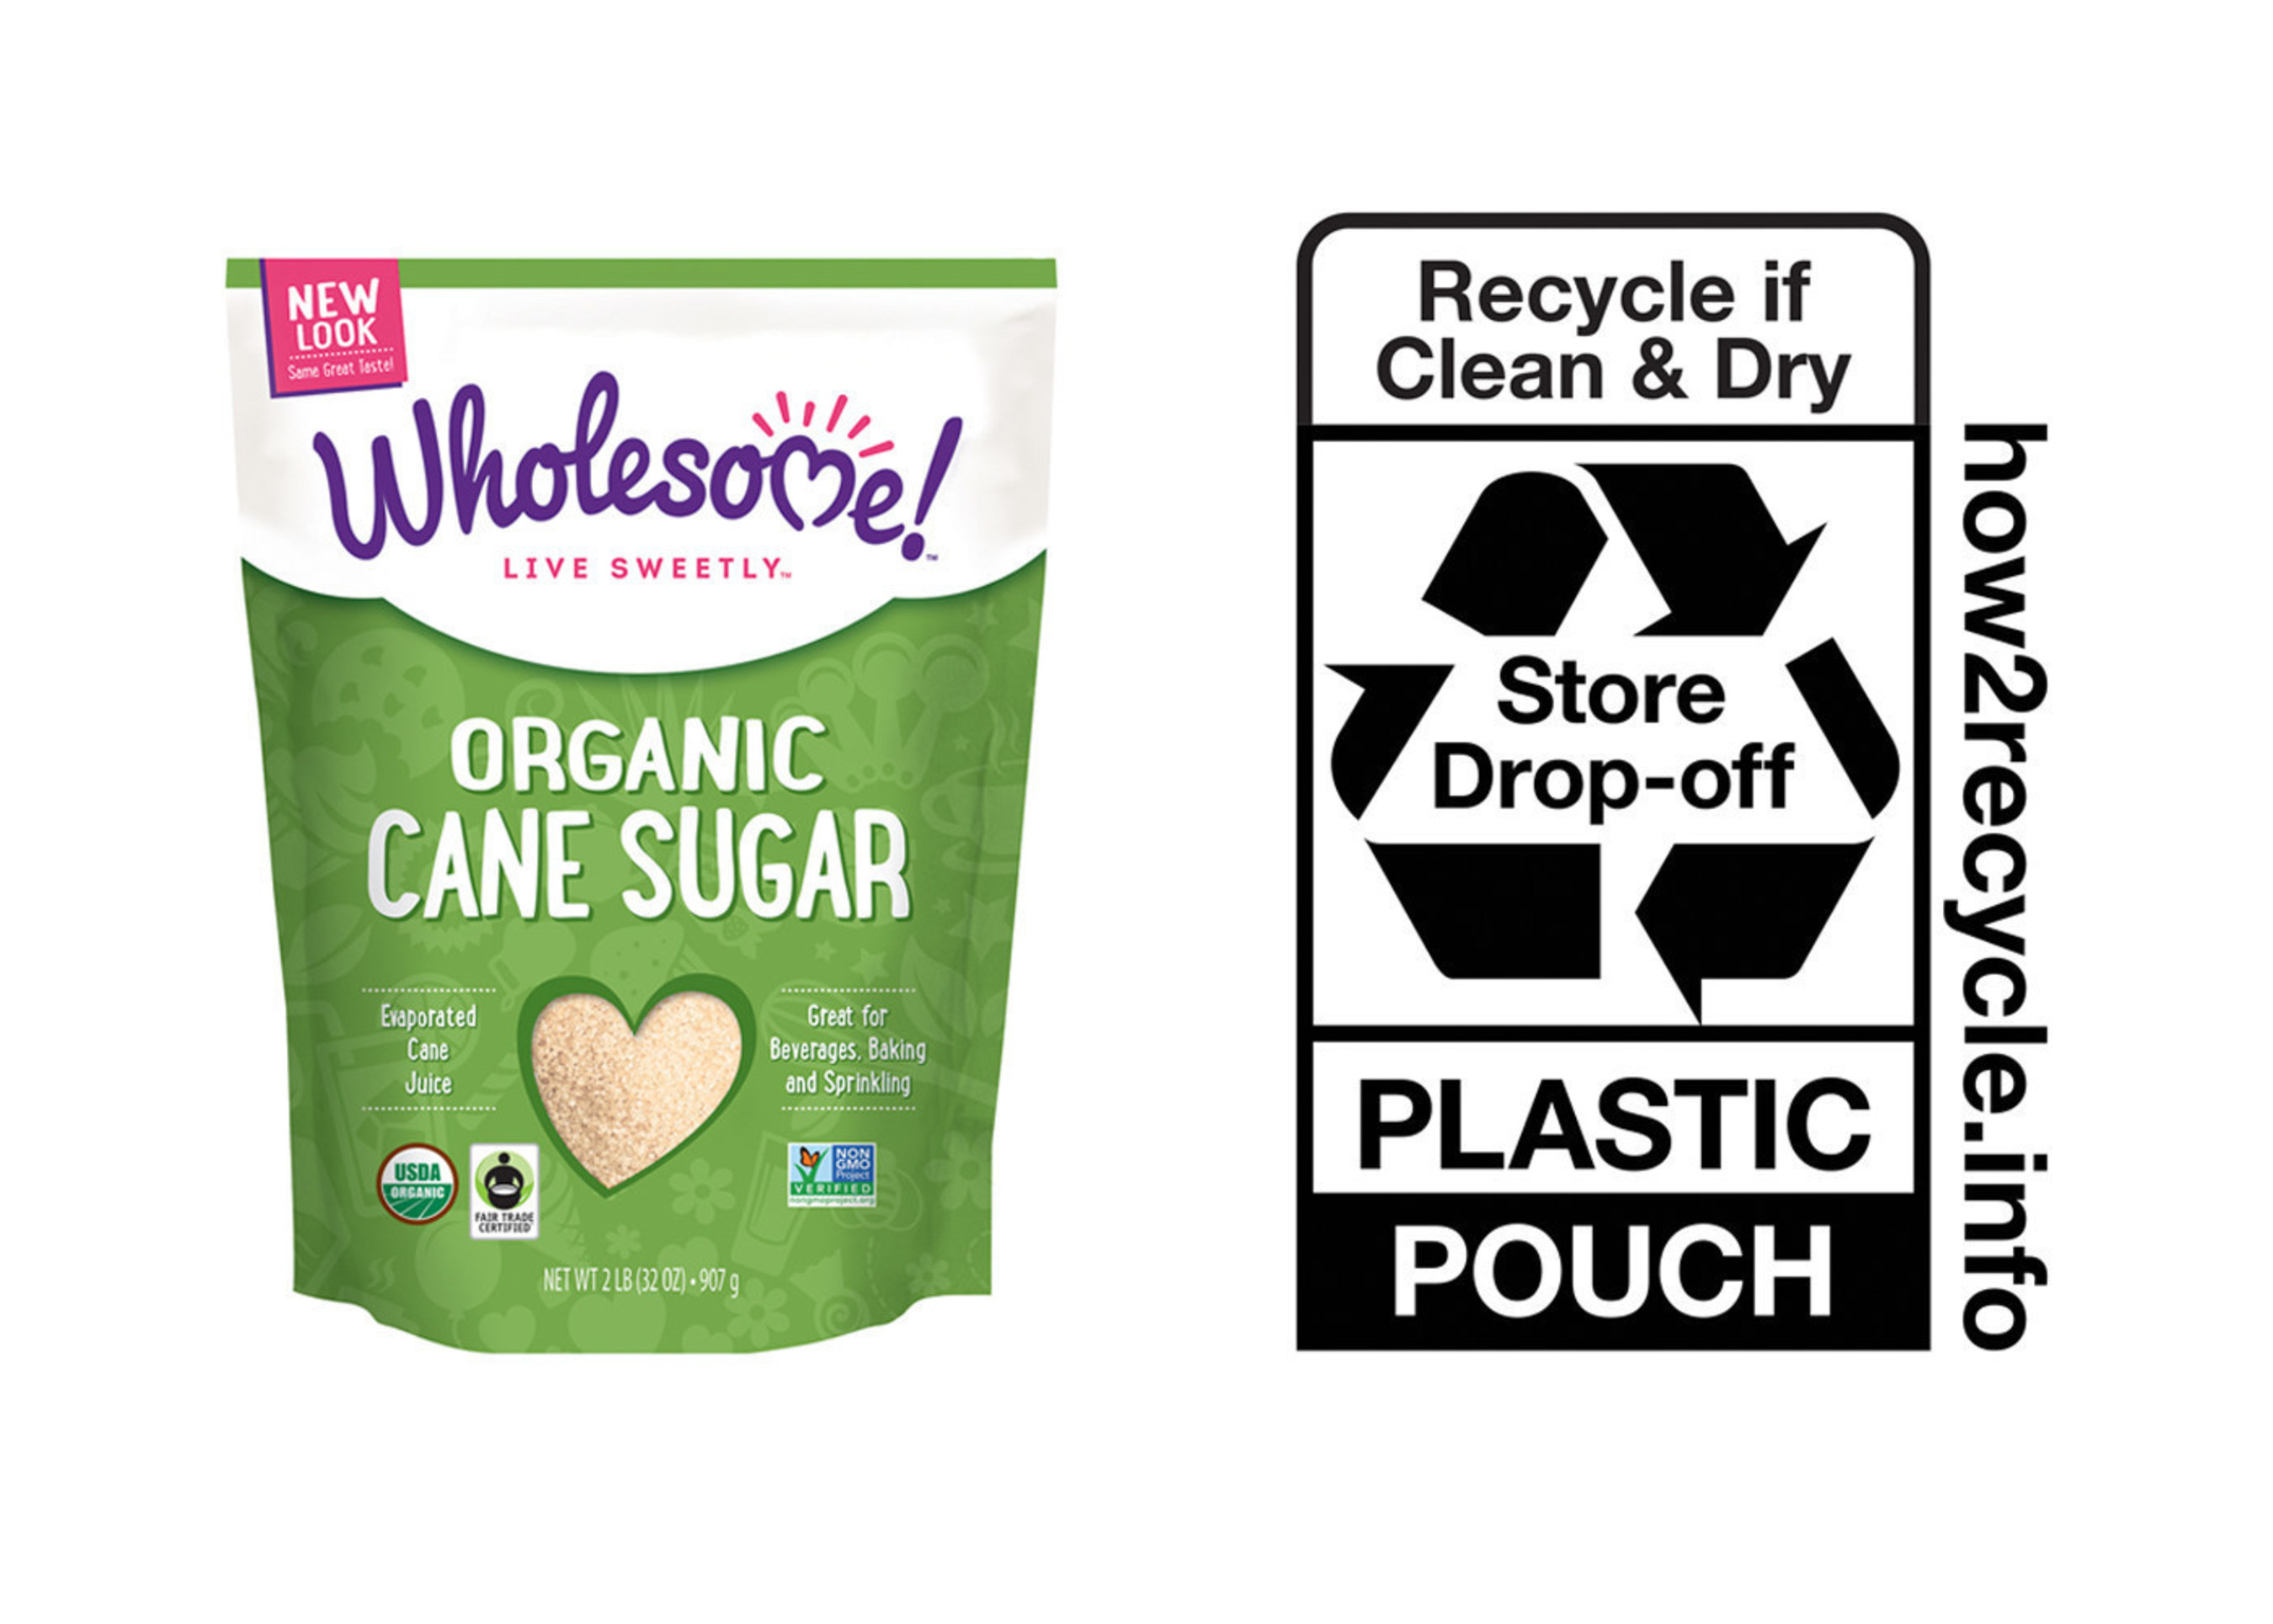 """Wholesome! will be the first organic sweetener brand to join How2Recycle in promoting recycling education. How2Recycle has created a universal recycling language for consumers through the use of special on-package logos that provide clear instructions for each piece of recyclable packaging. Wholesome! will first integrate these logos onto its organic granulated sugar pouches and then transition its remaining U.S. products to a package with the How2Recycle logo over the next year. The recyclable stand-up pouches will carry the """"store drop off"""" logo instructing consumers to drop their empty pouches in the plastic bag recycling bins found at most grocery stores."""